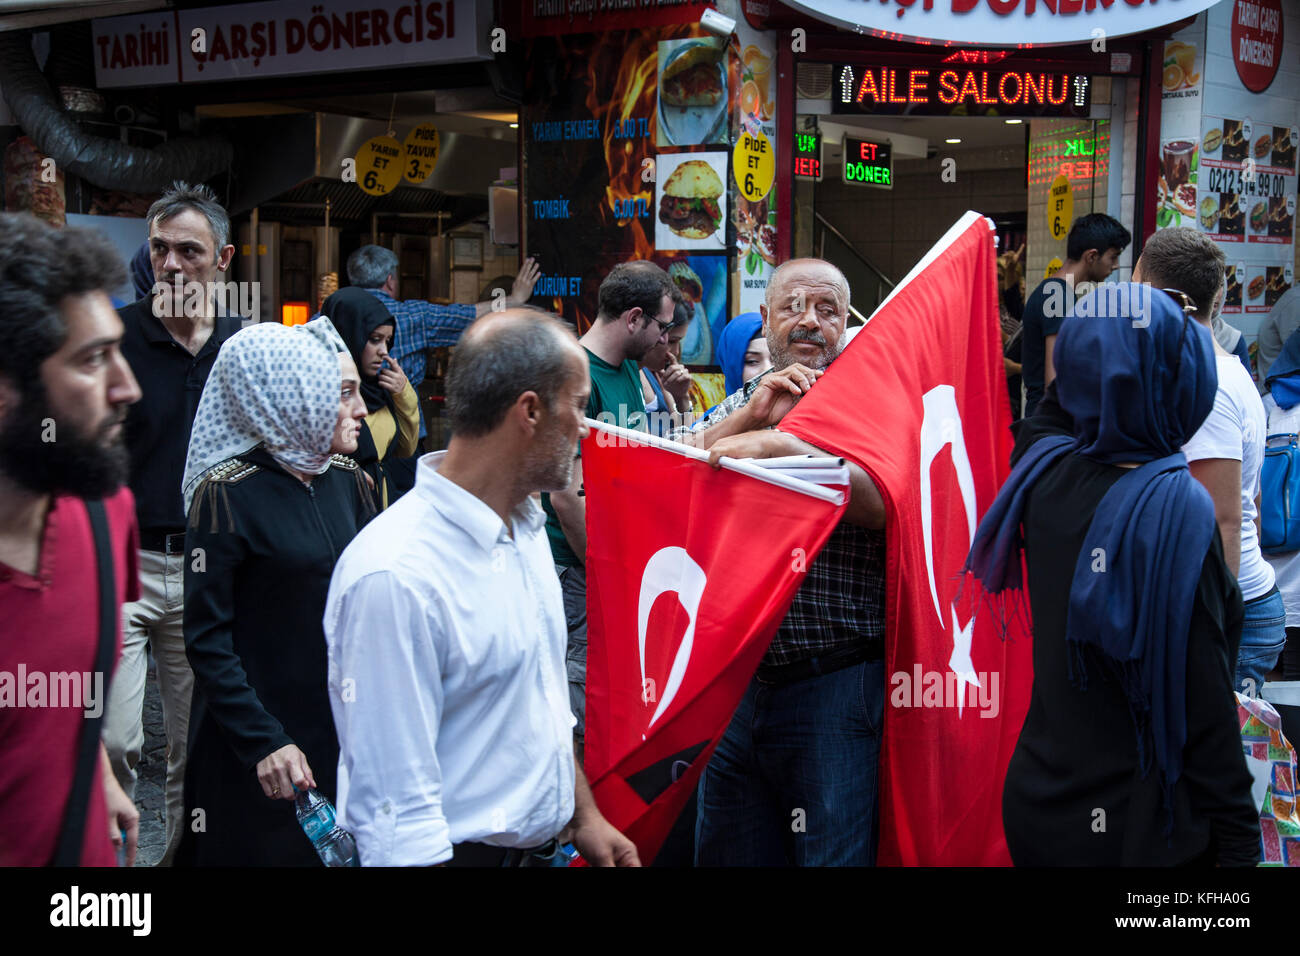 A man sells Turkish National flags on the street outside the spice market in Istanbul, Turkey. - Stock Image